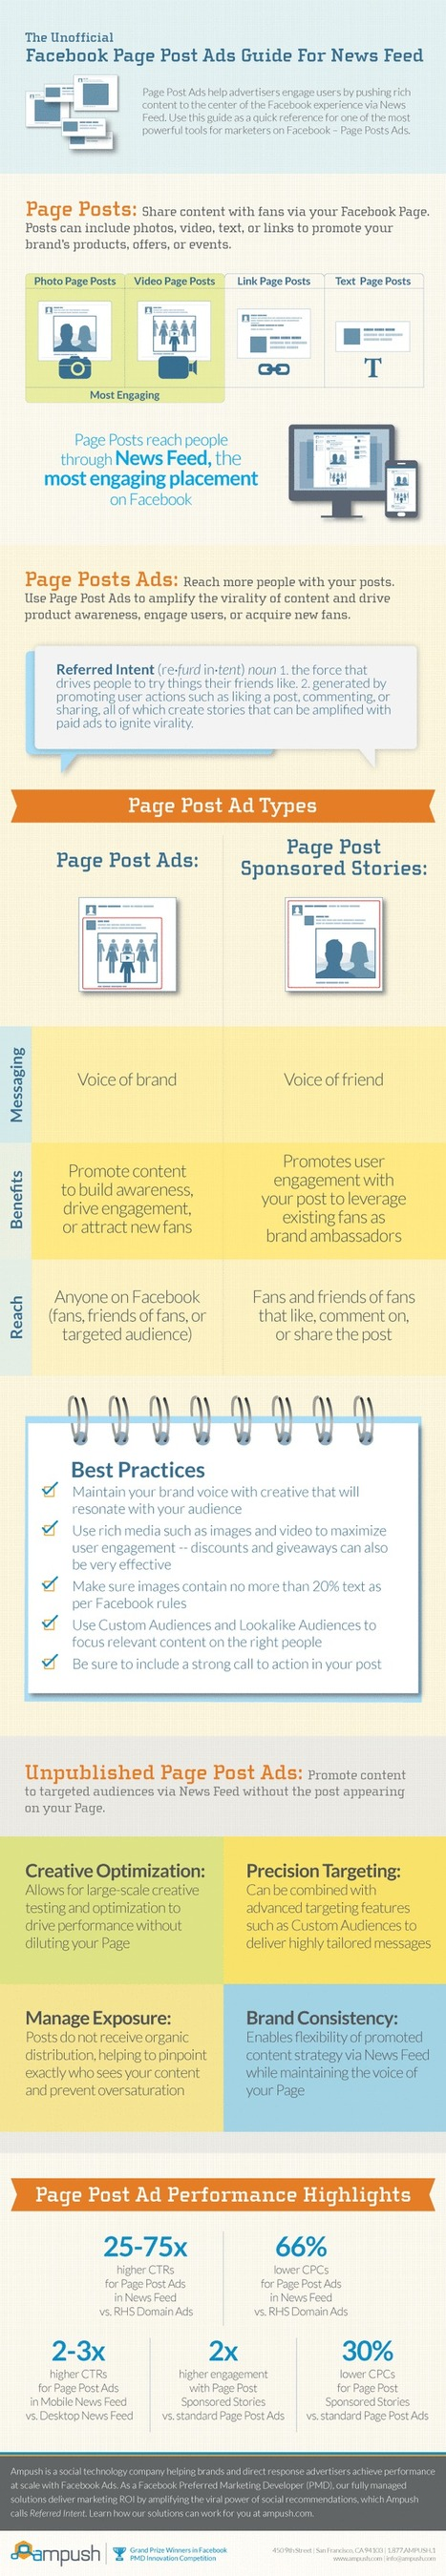 [Infographie] Guide des publicités Facebook sur le News Feed | Social Media Curation par Mon Habitat Web | Scoop.it